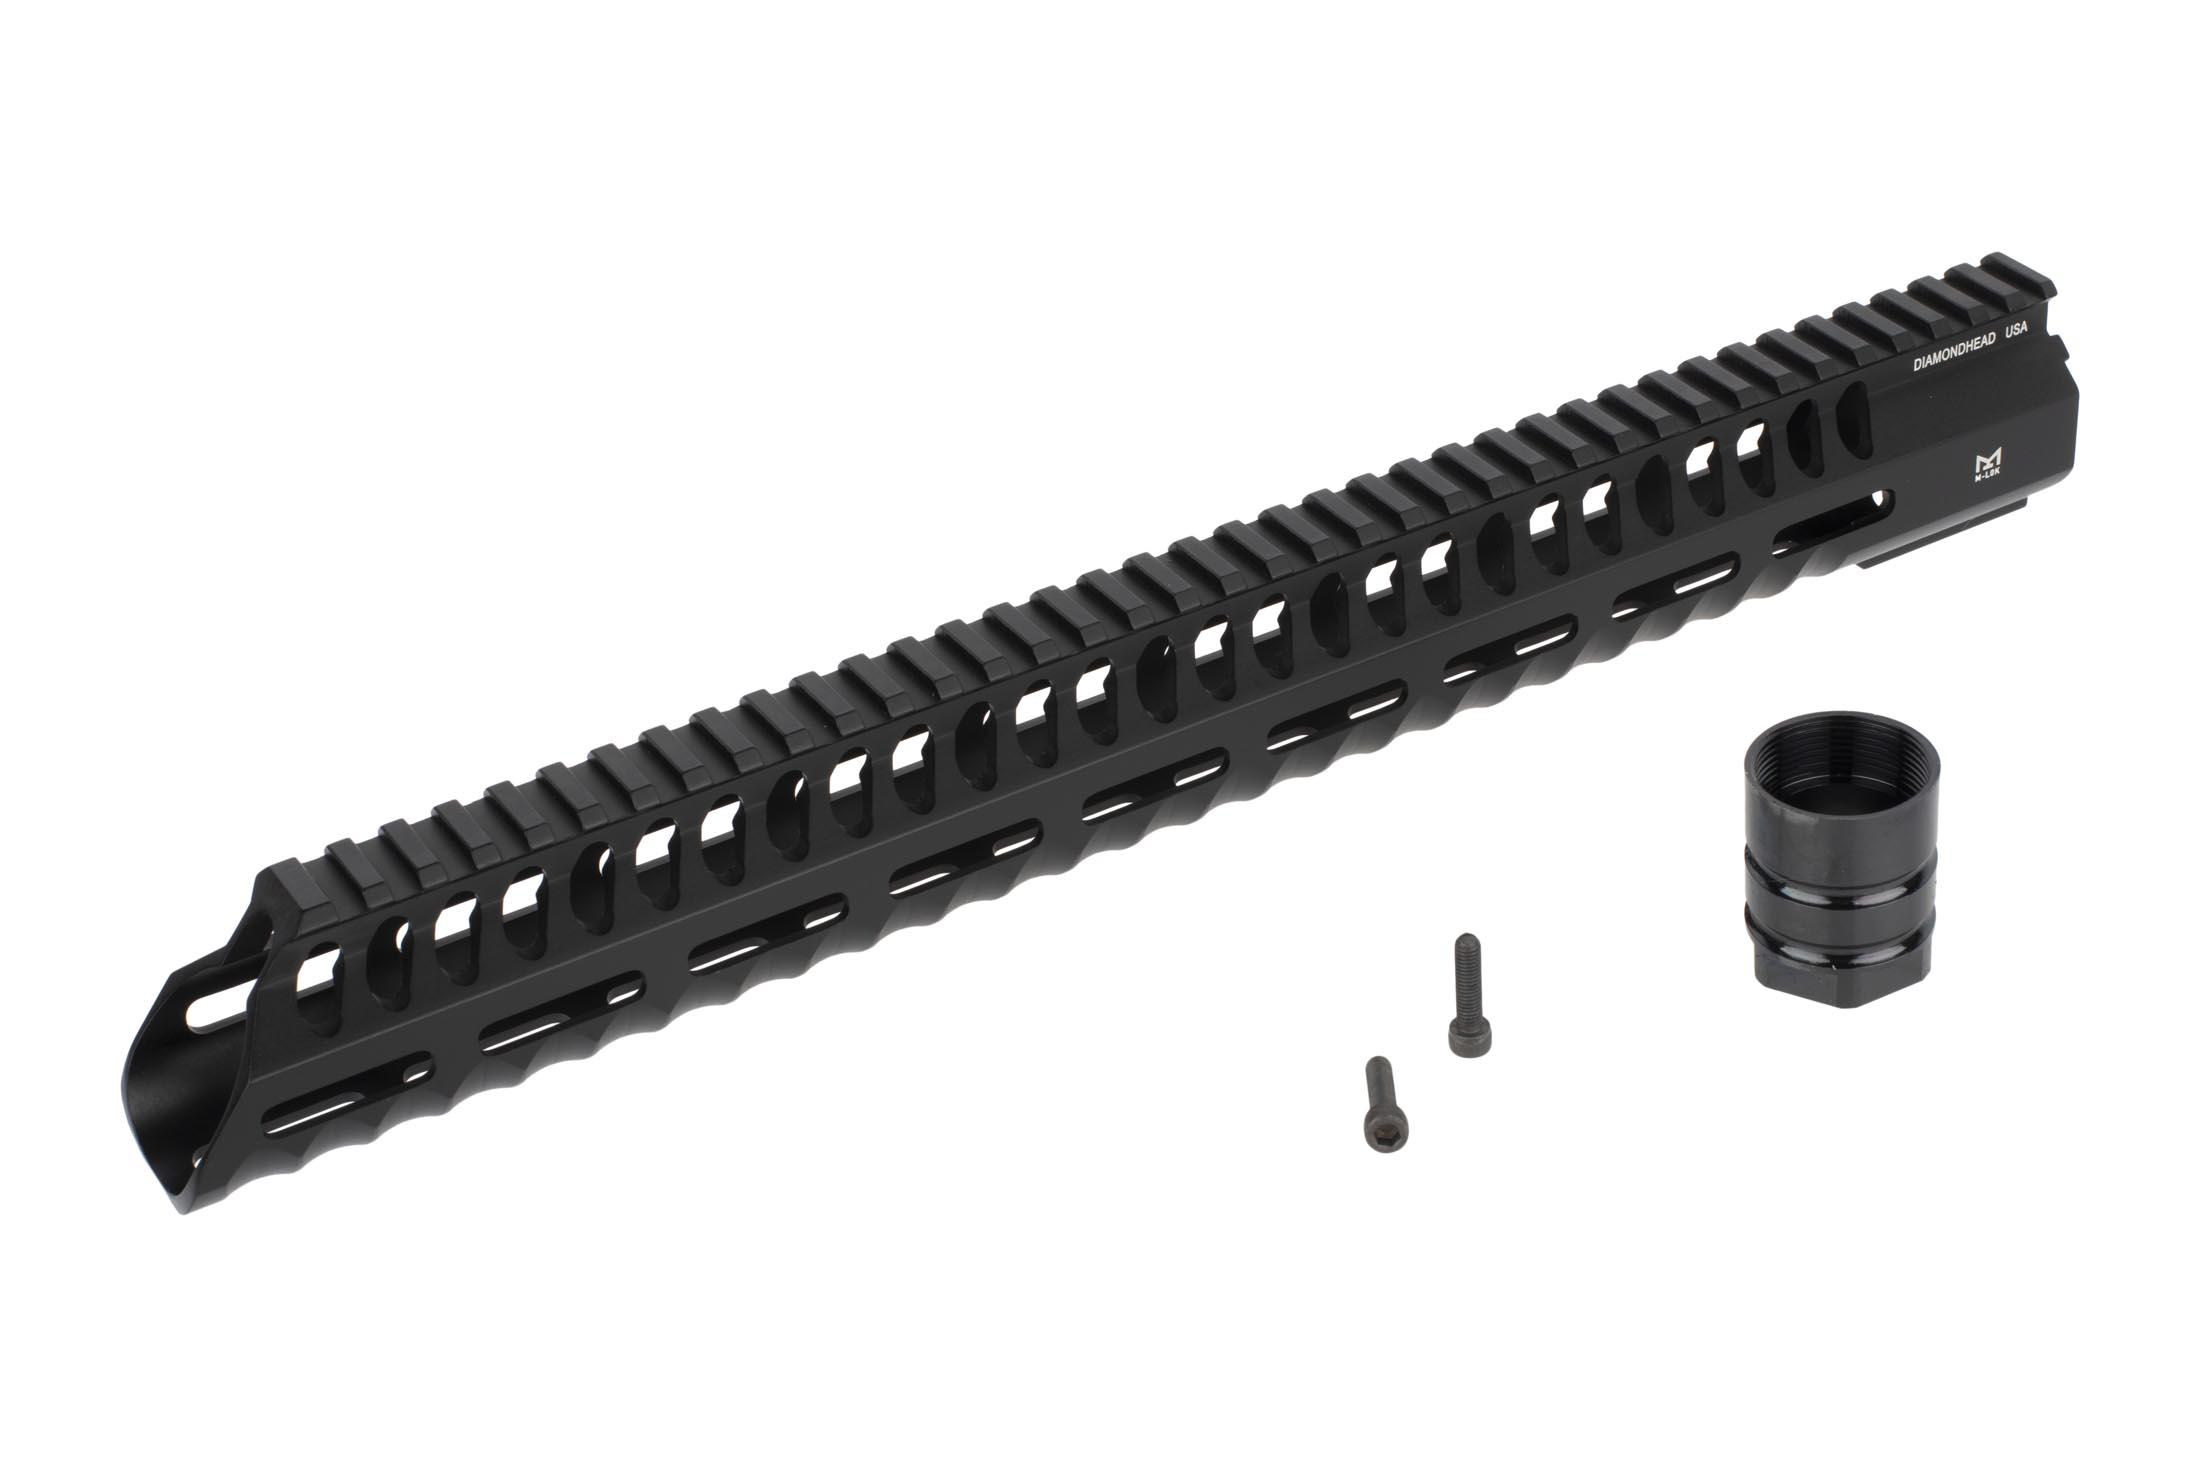 Diamondhead USA free float 15in VRS-T M-LOK handguard includes a steel barrel nut and mounting hardware